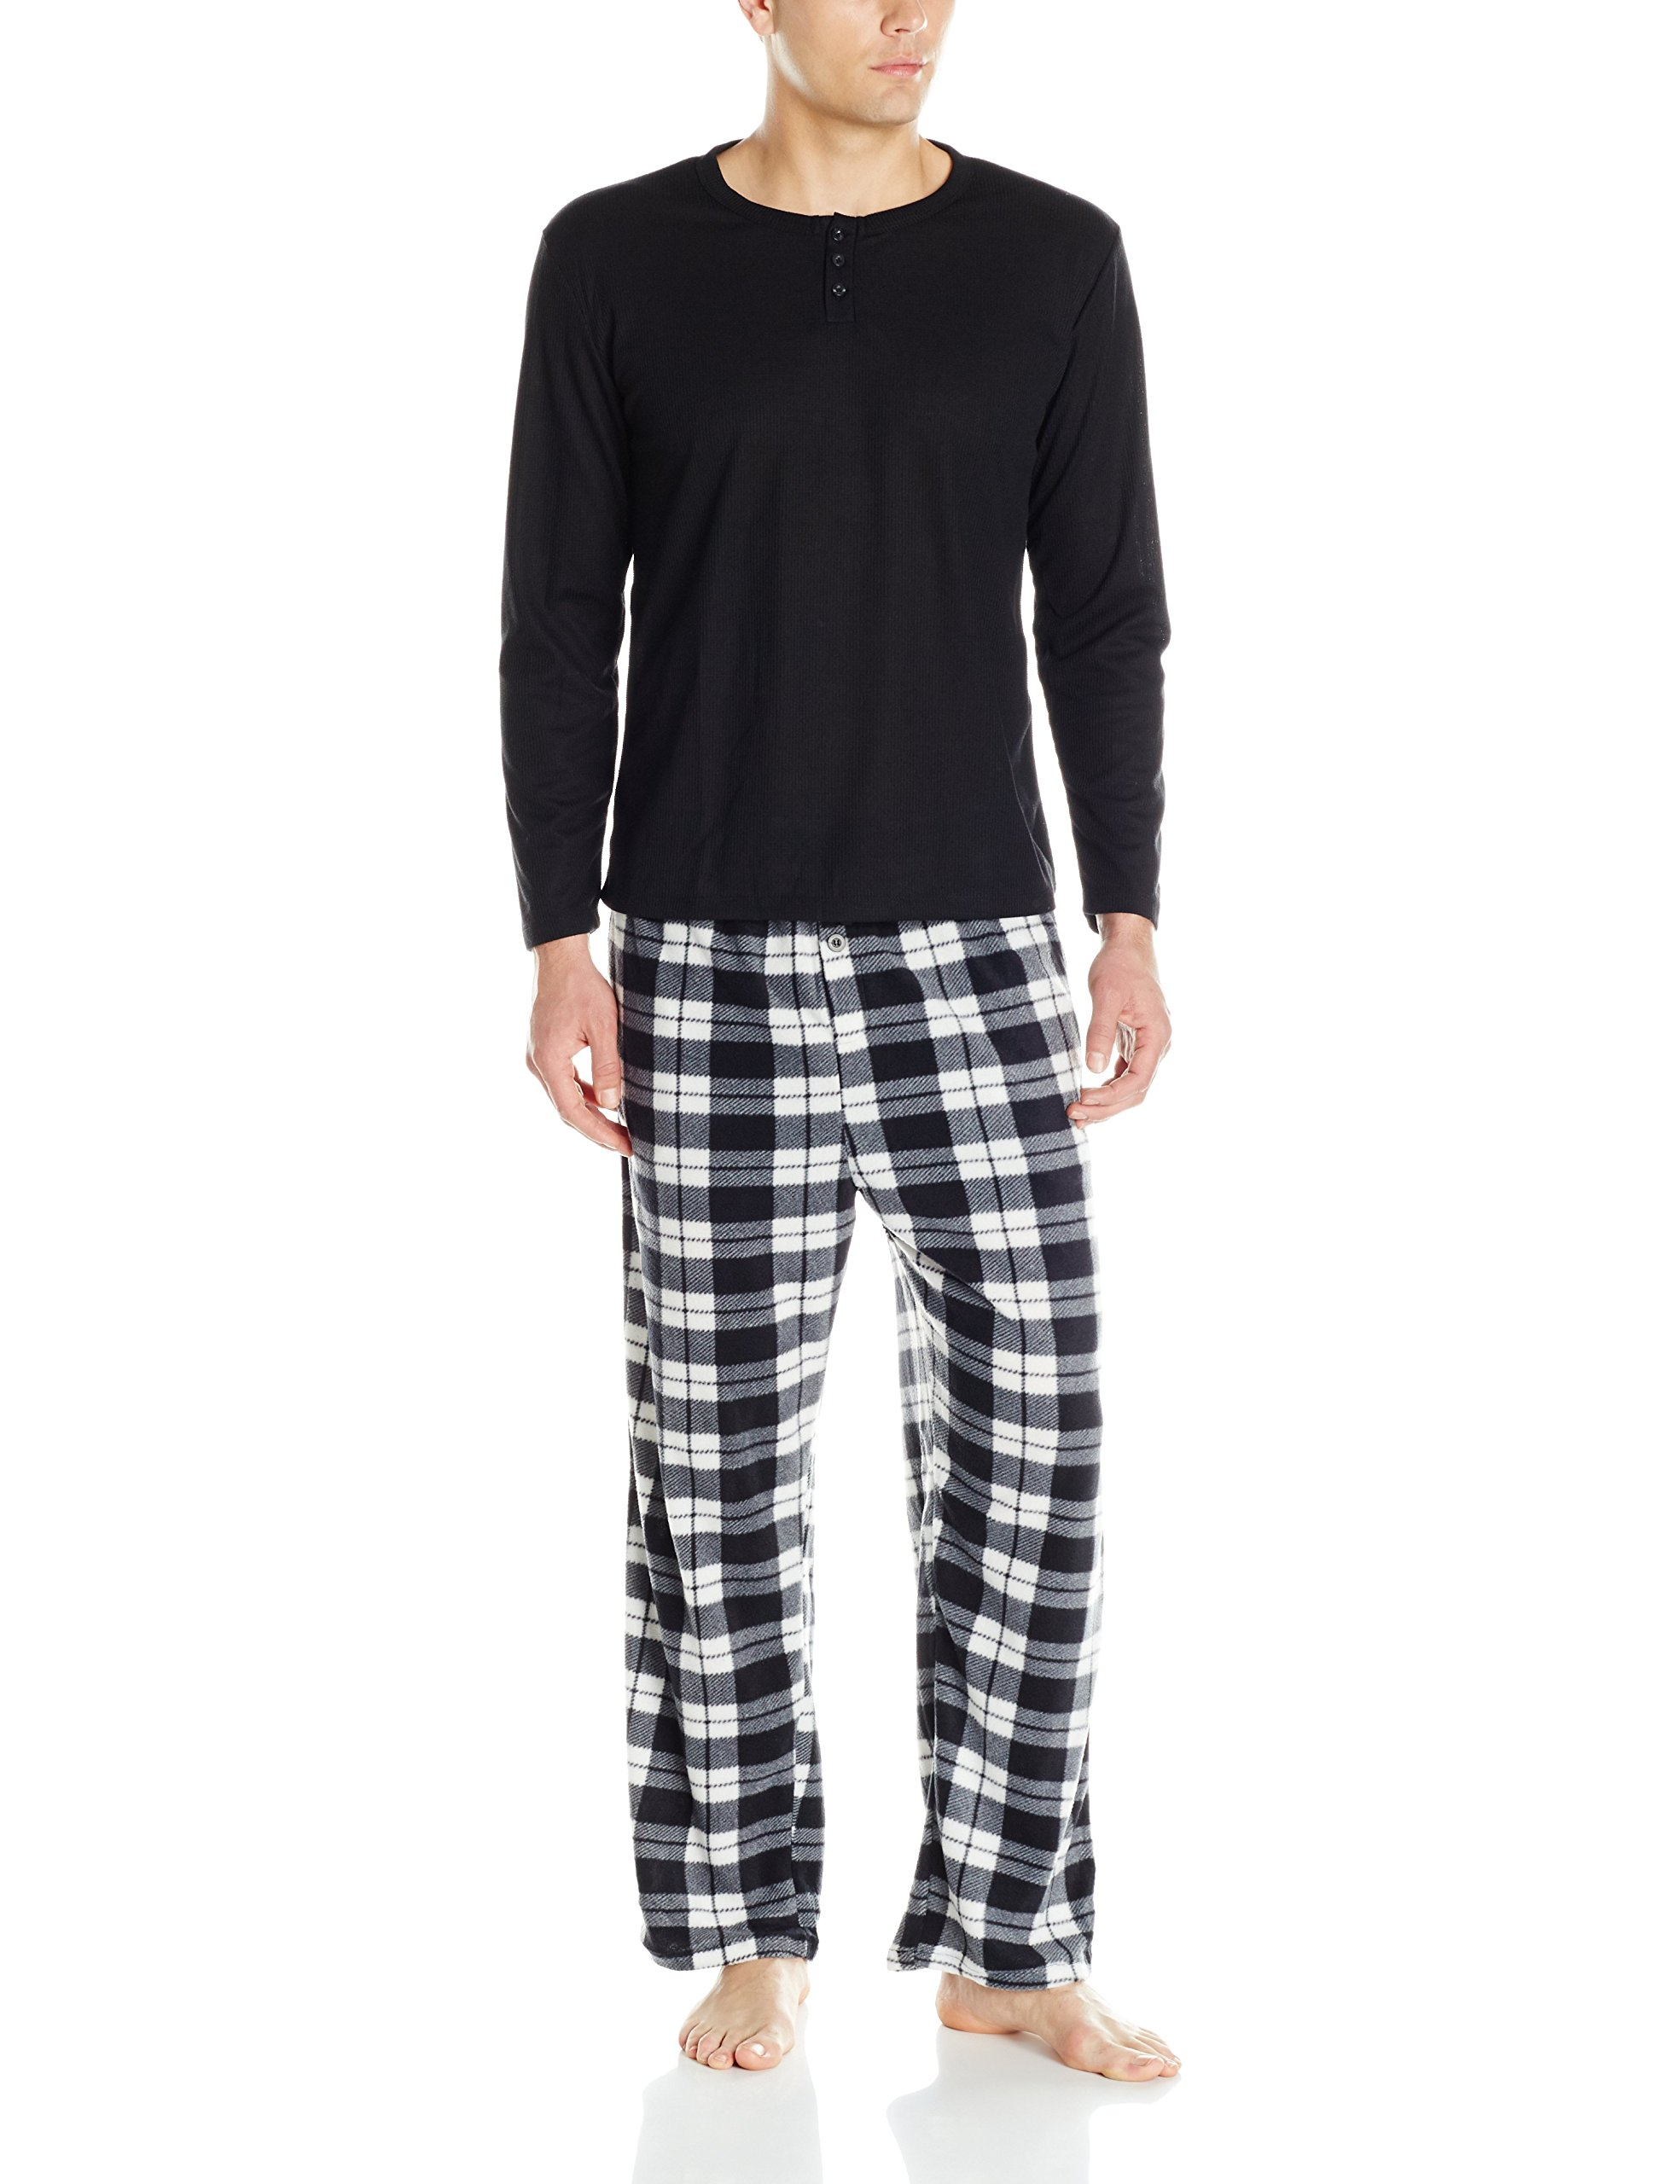 Essentials by Seven Apparel Men's Long Sleeve Pajama Set with Fleece Bottom, Grey, XX-Large by Essentials by Seven Apparel